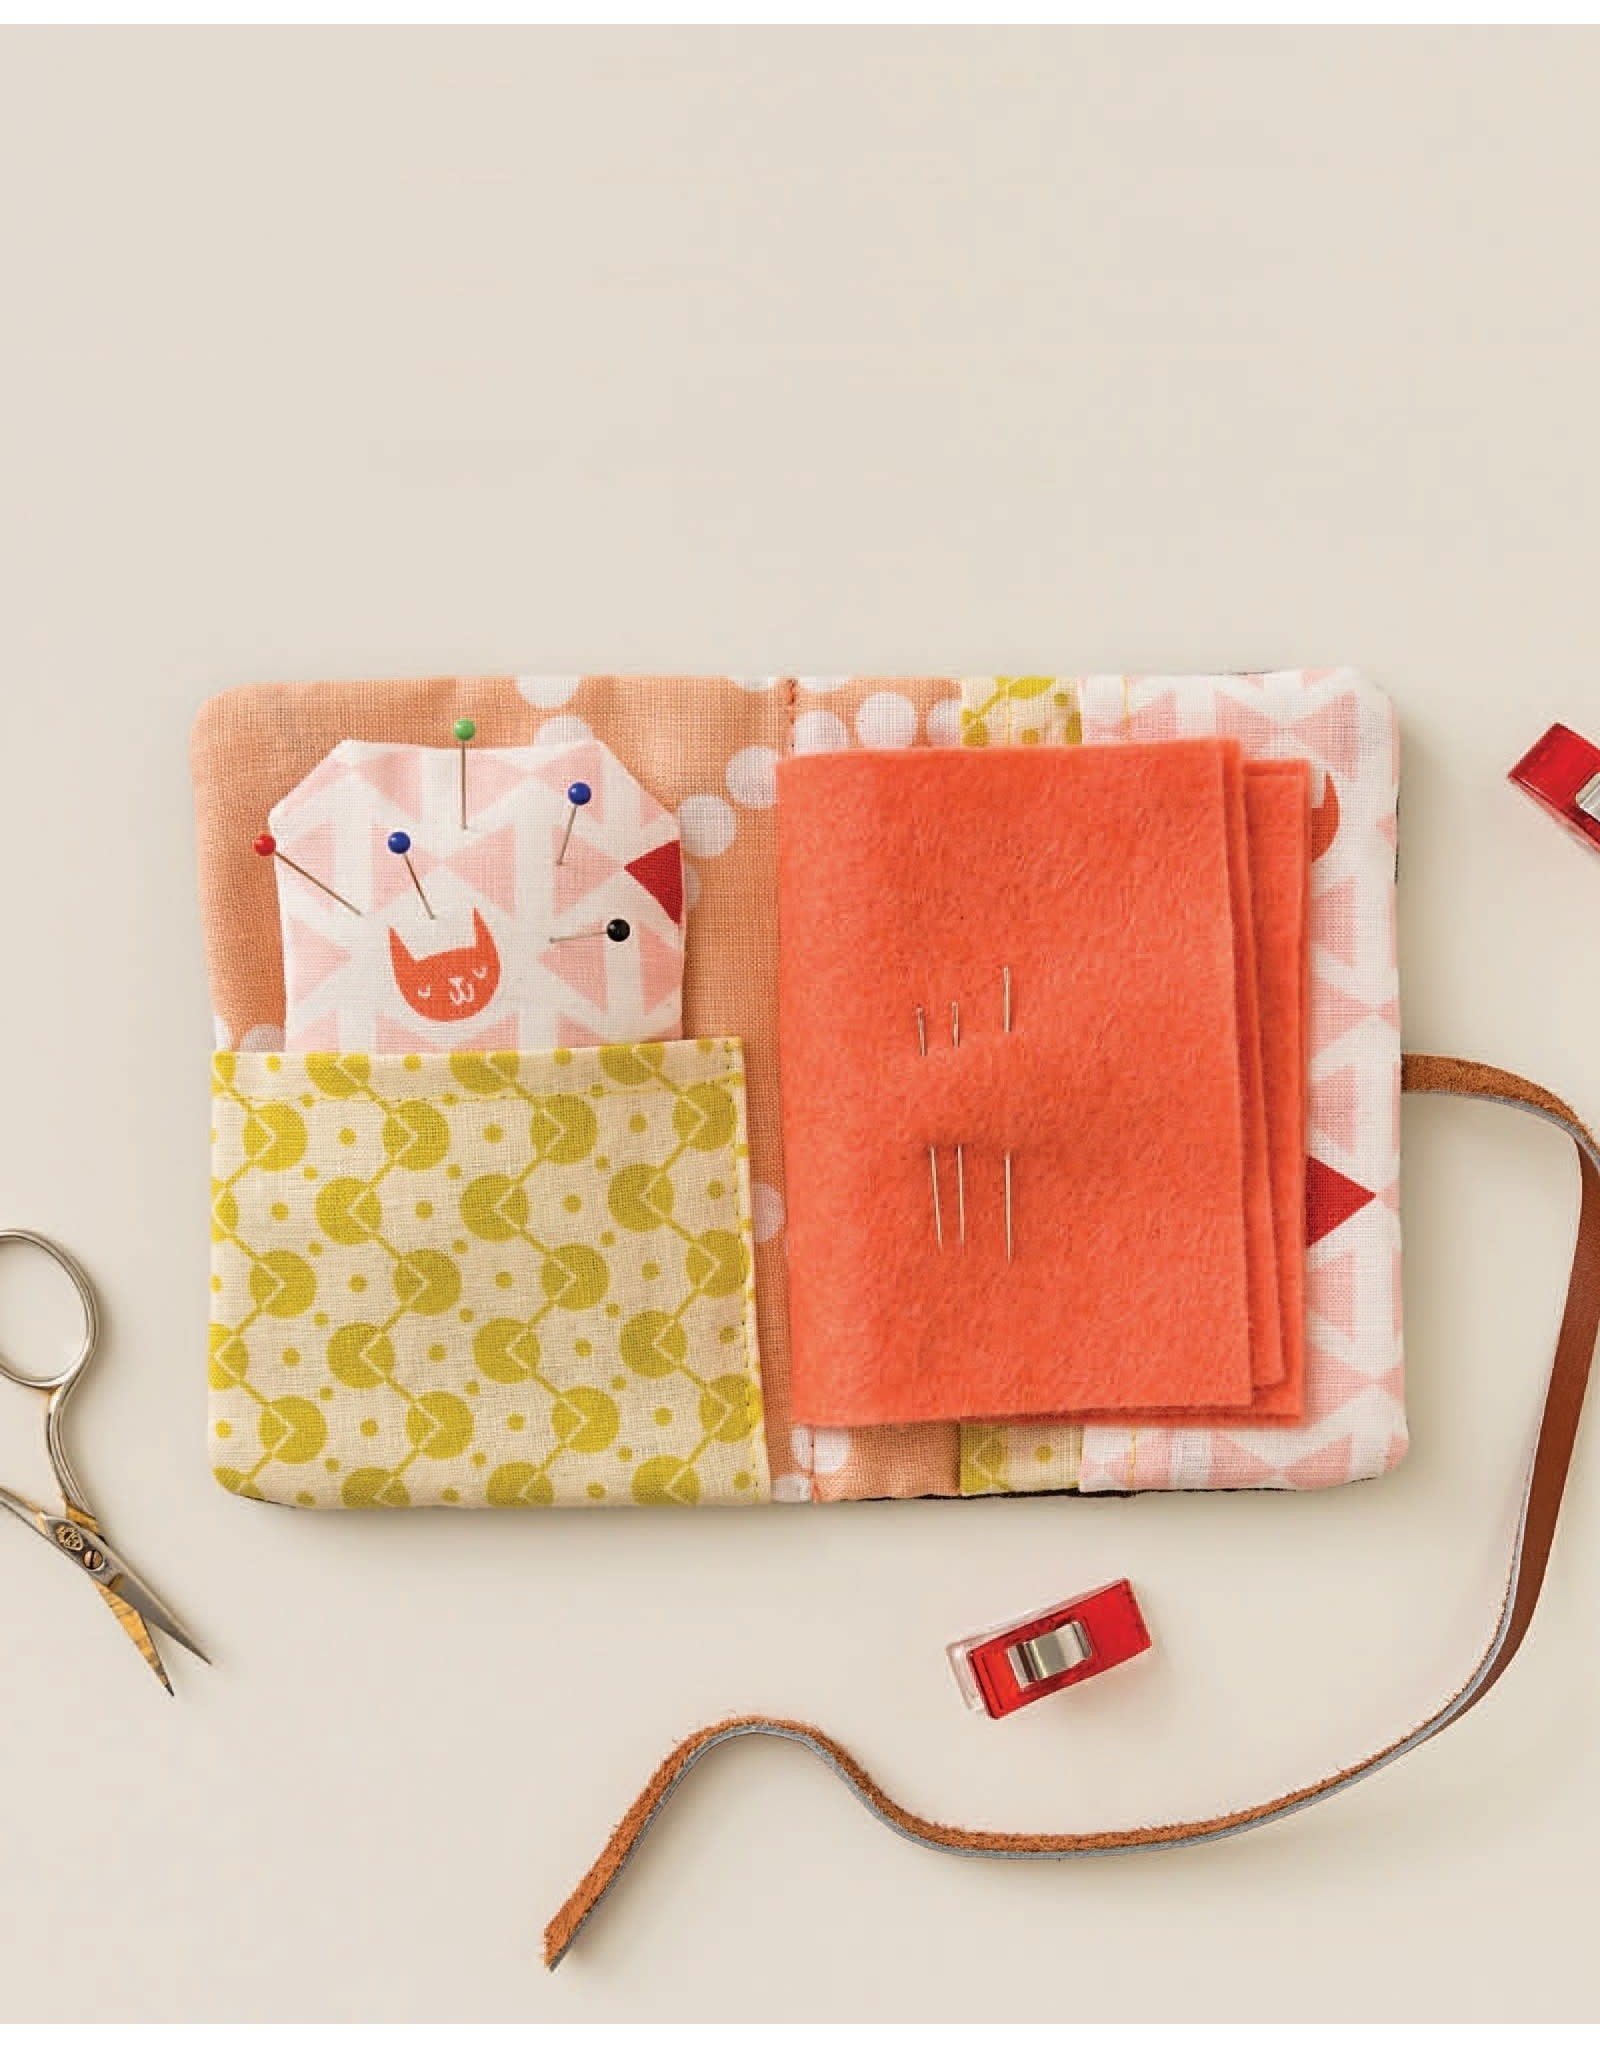 Aneela Hoey Stitched Sewing Organizers by Aneela Hoey